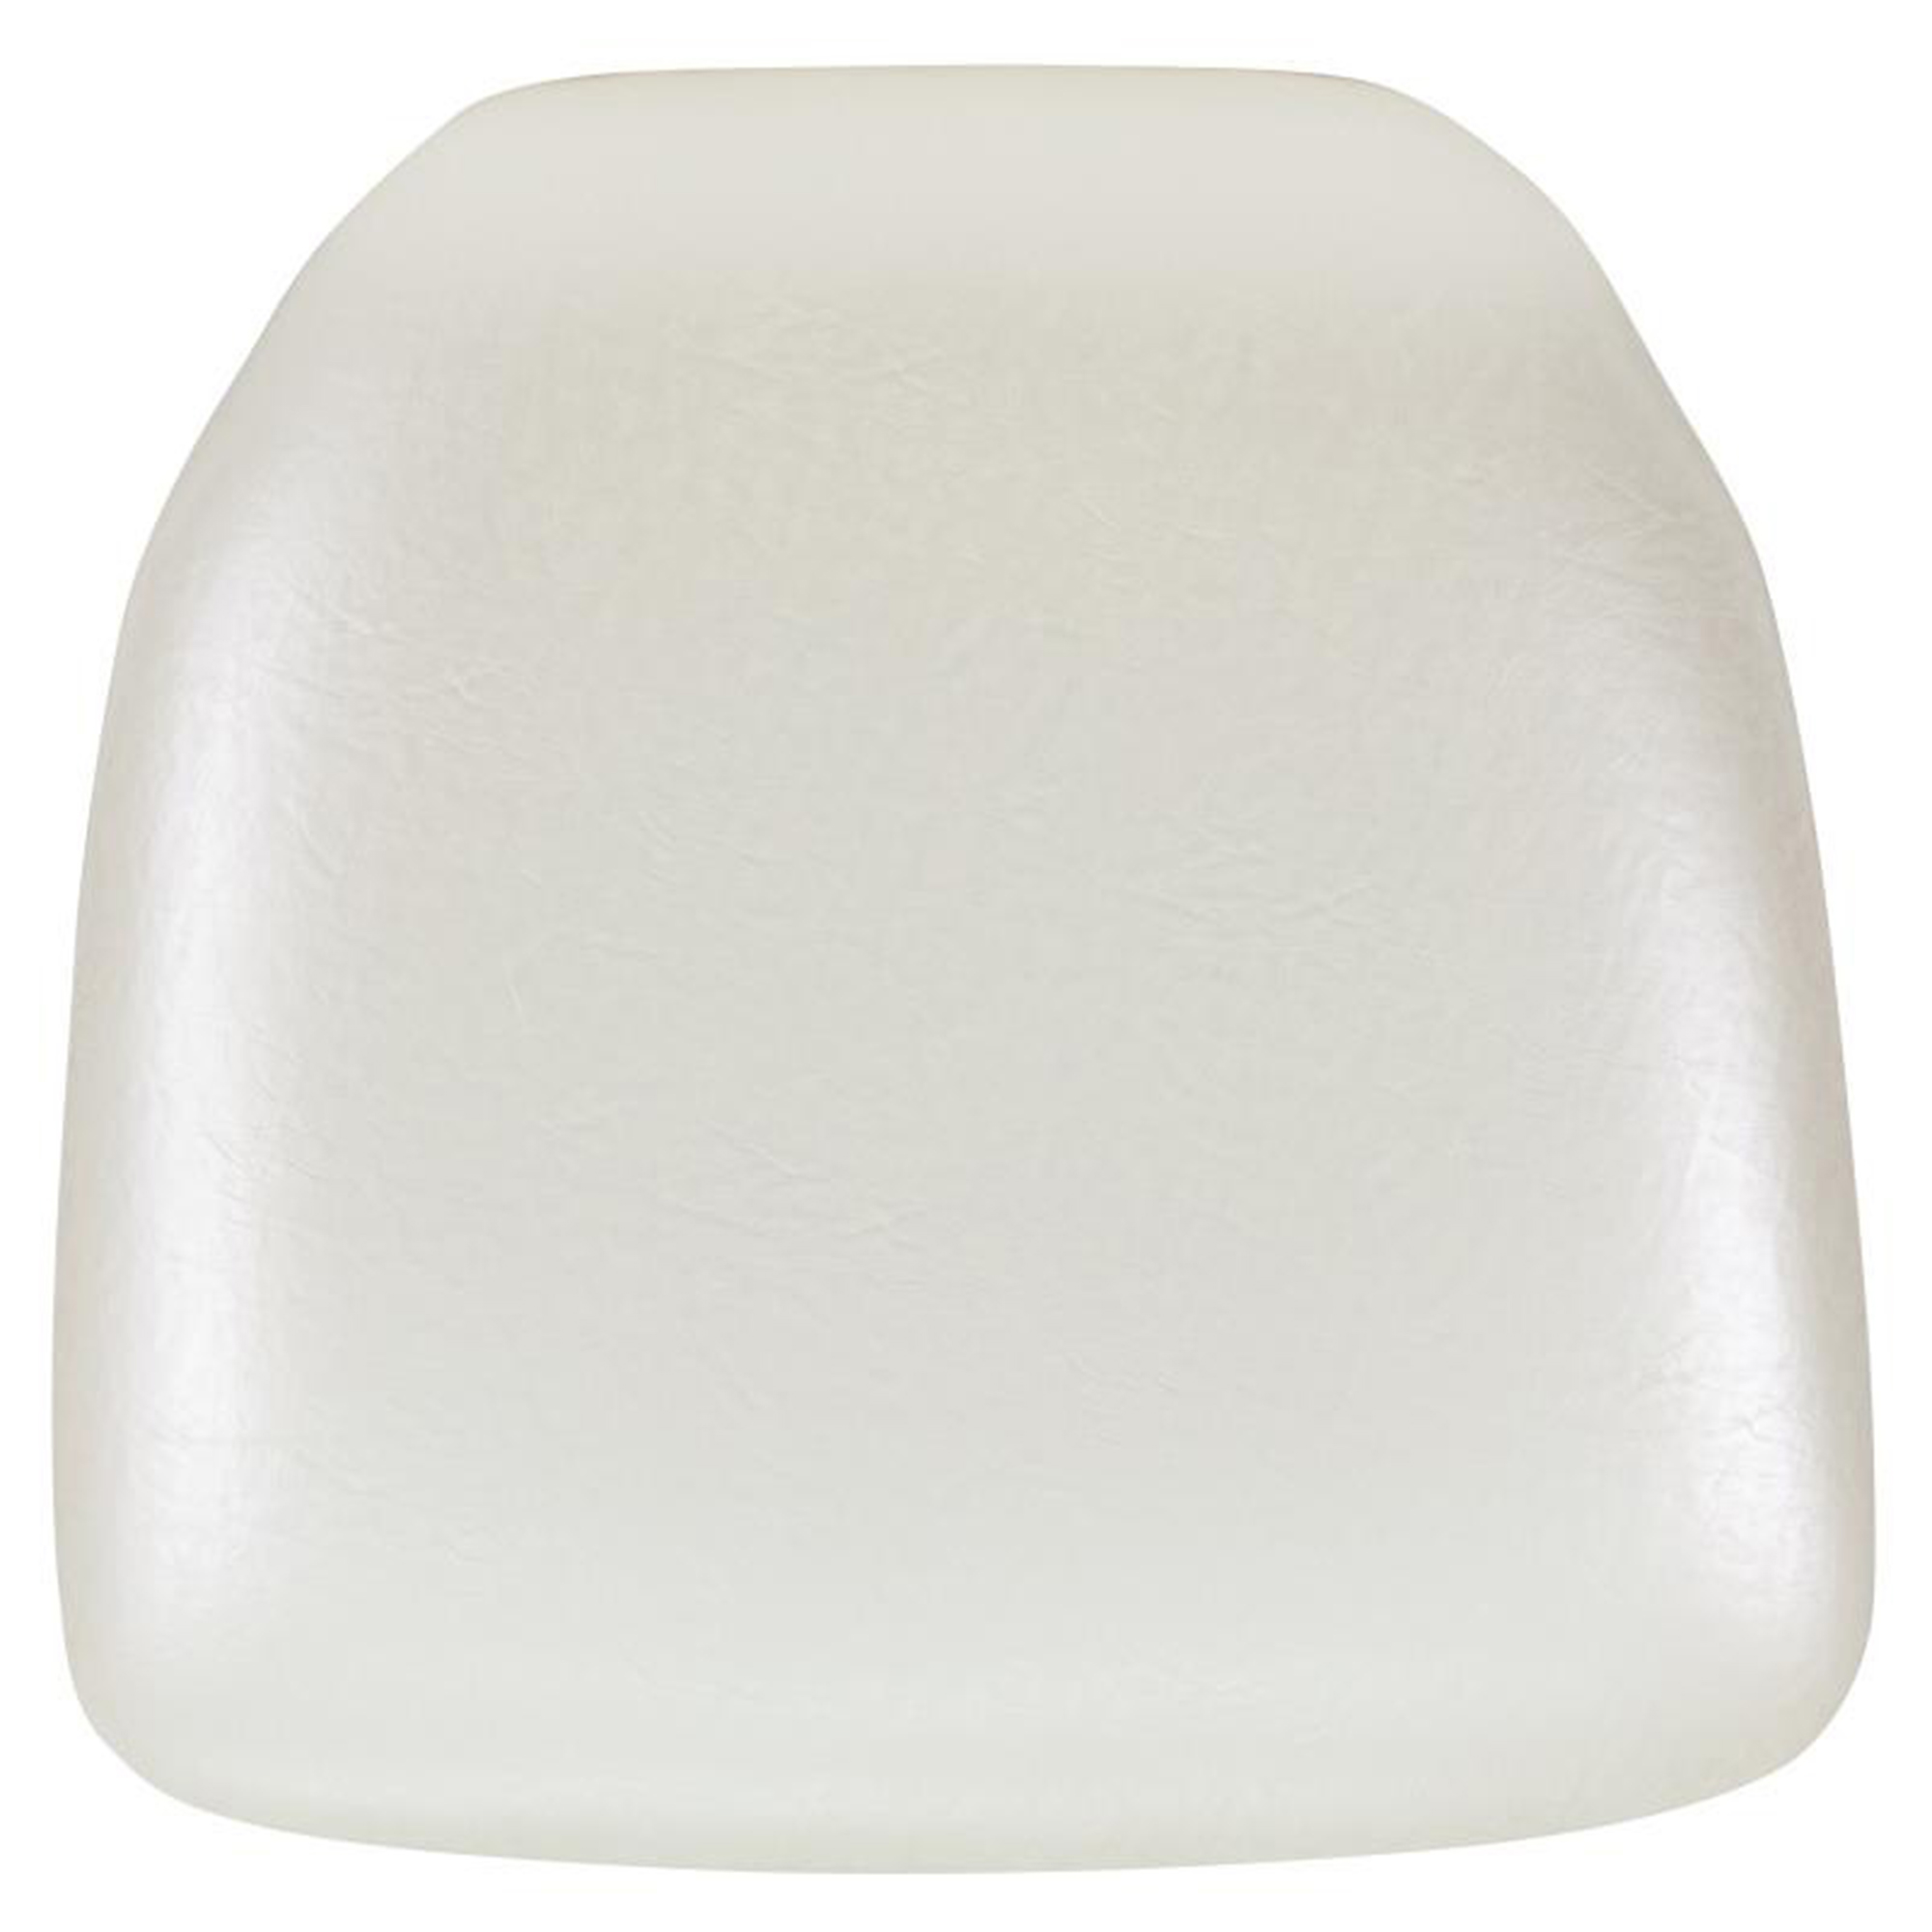 Offex Hard Ivory Vinyl Chiavari Chair Cushion [BH-IVORY-HARD-VYL-GG]